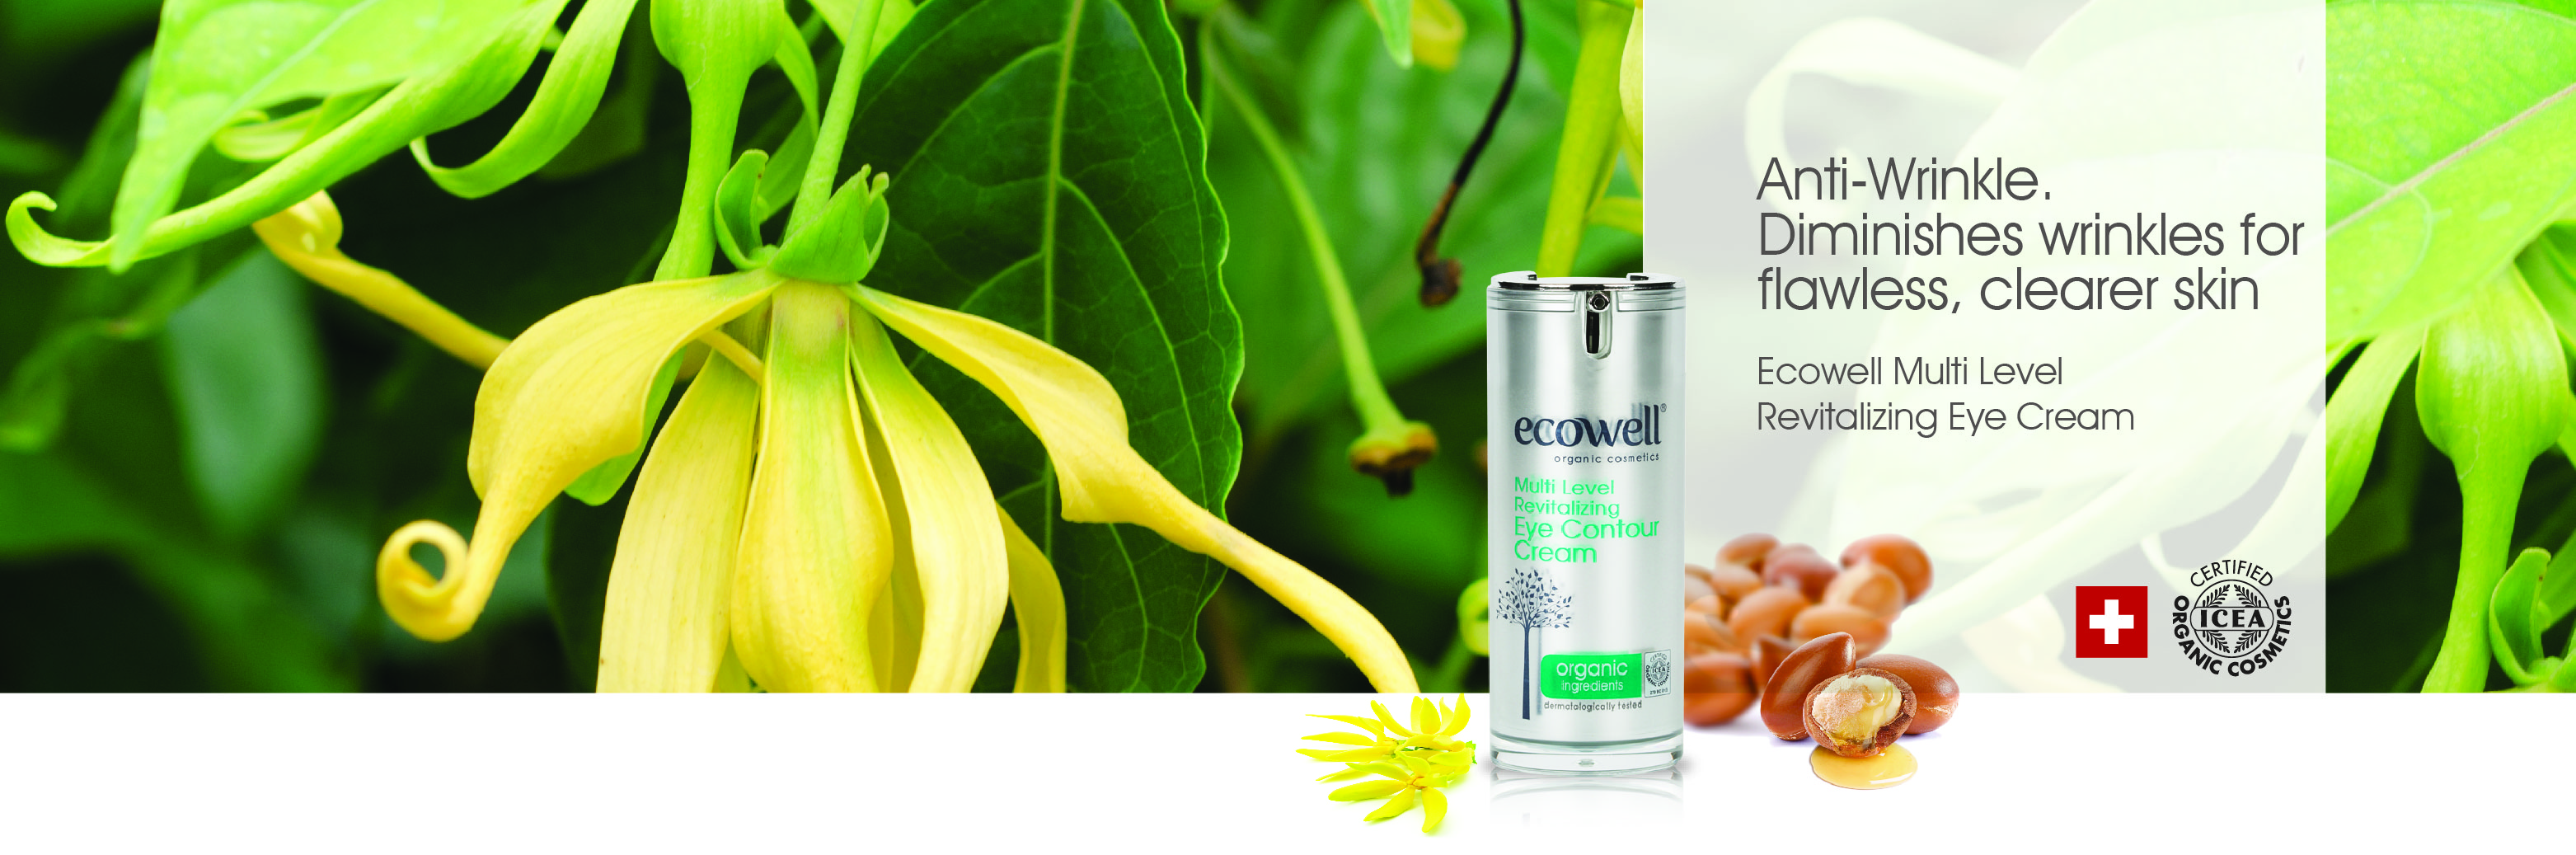 Ecowell Multi level Revitalizing Eye Cream